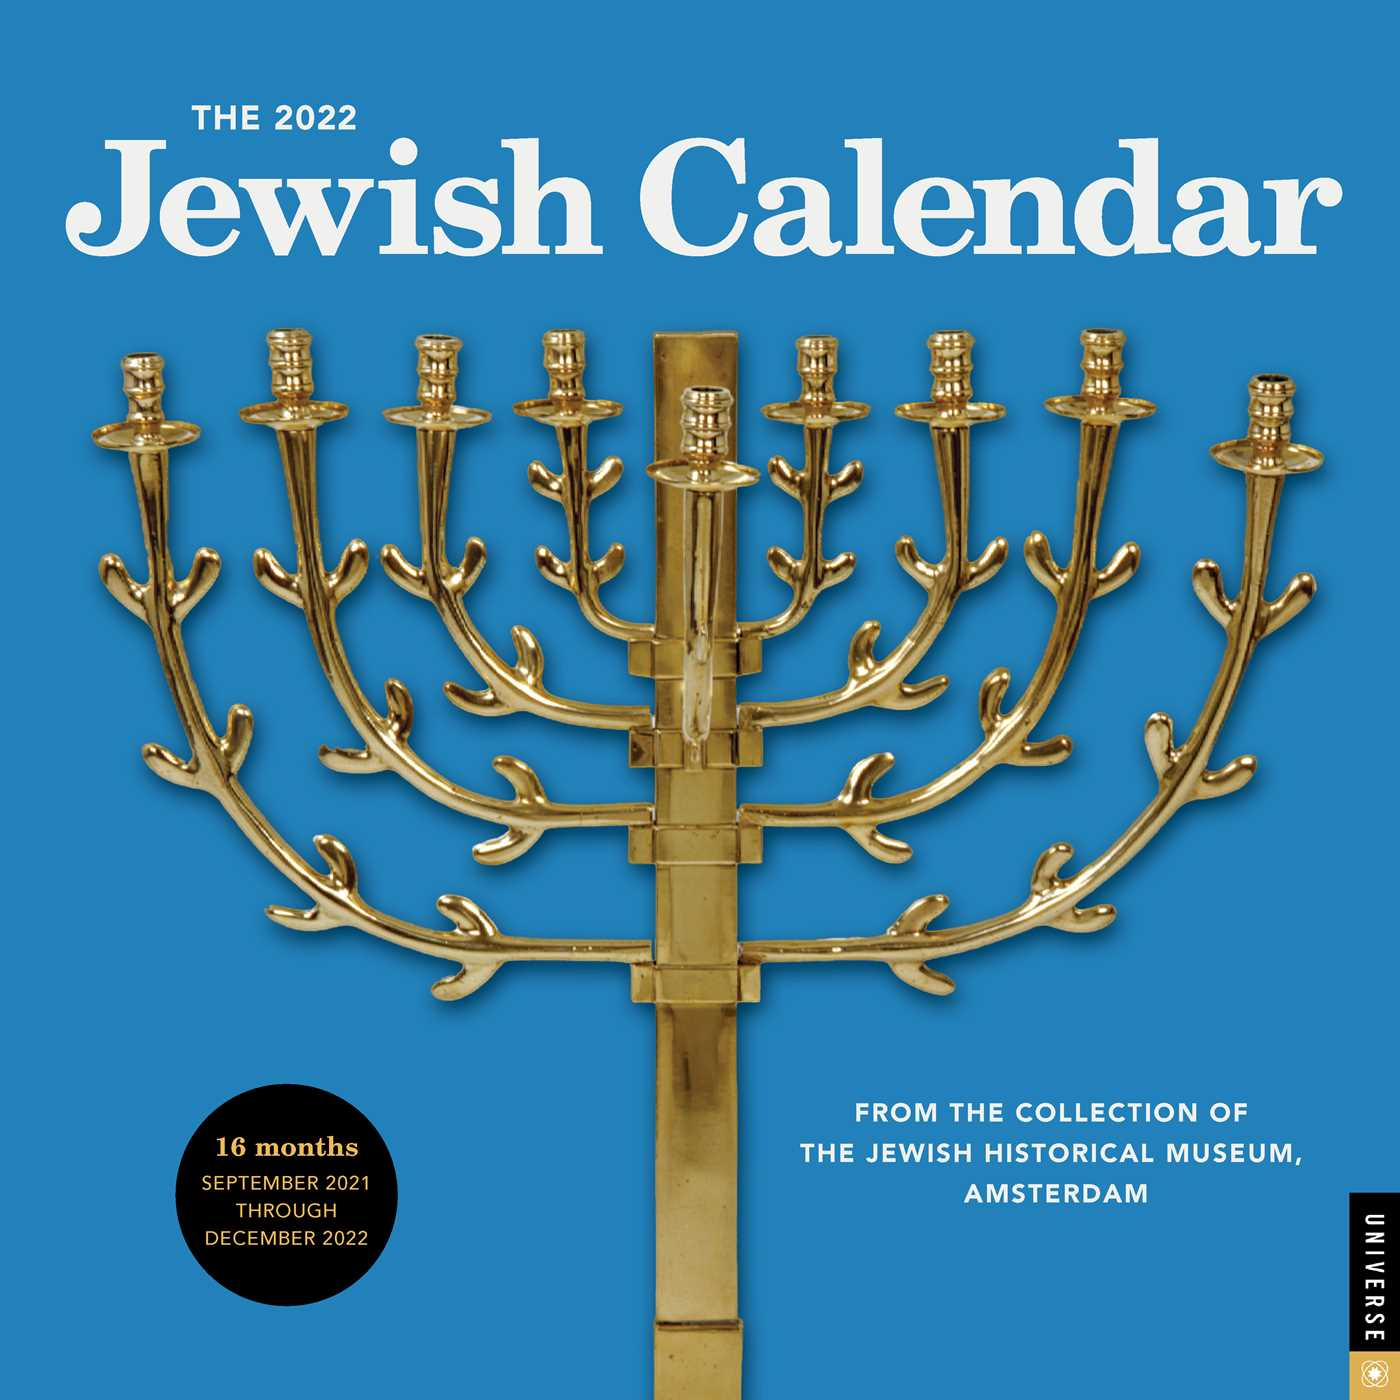 Jewish Calendar 2022 Chabad.The 2022 Jewish Calendar 16 Month 2021 2022 Wall Calendar Book Summary Video Official Publisher Page Simon Schuster